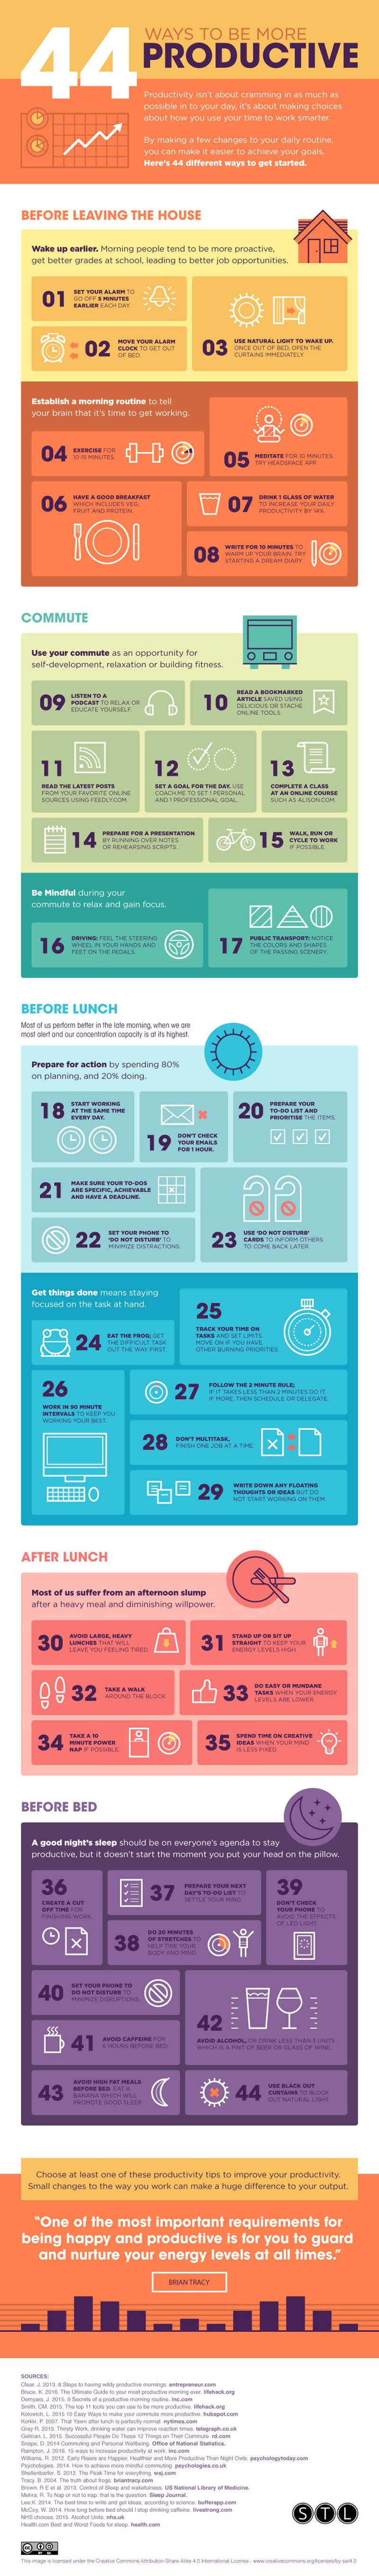 44-ways-to-be-more-productive.jpg